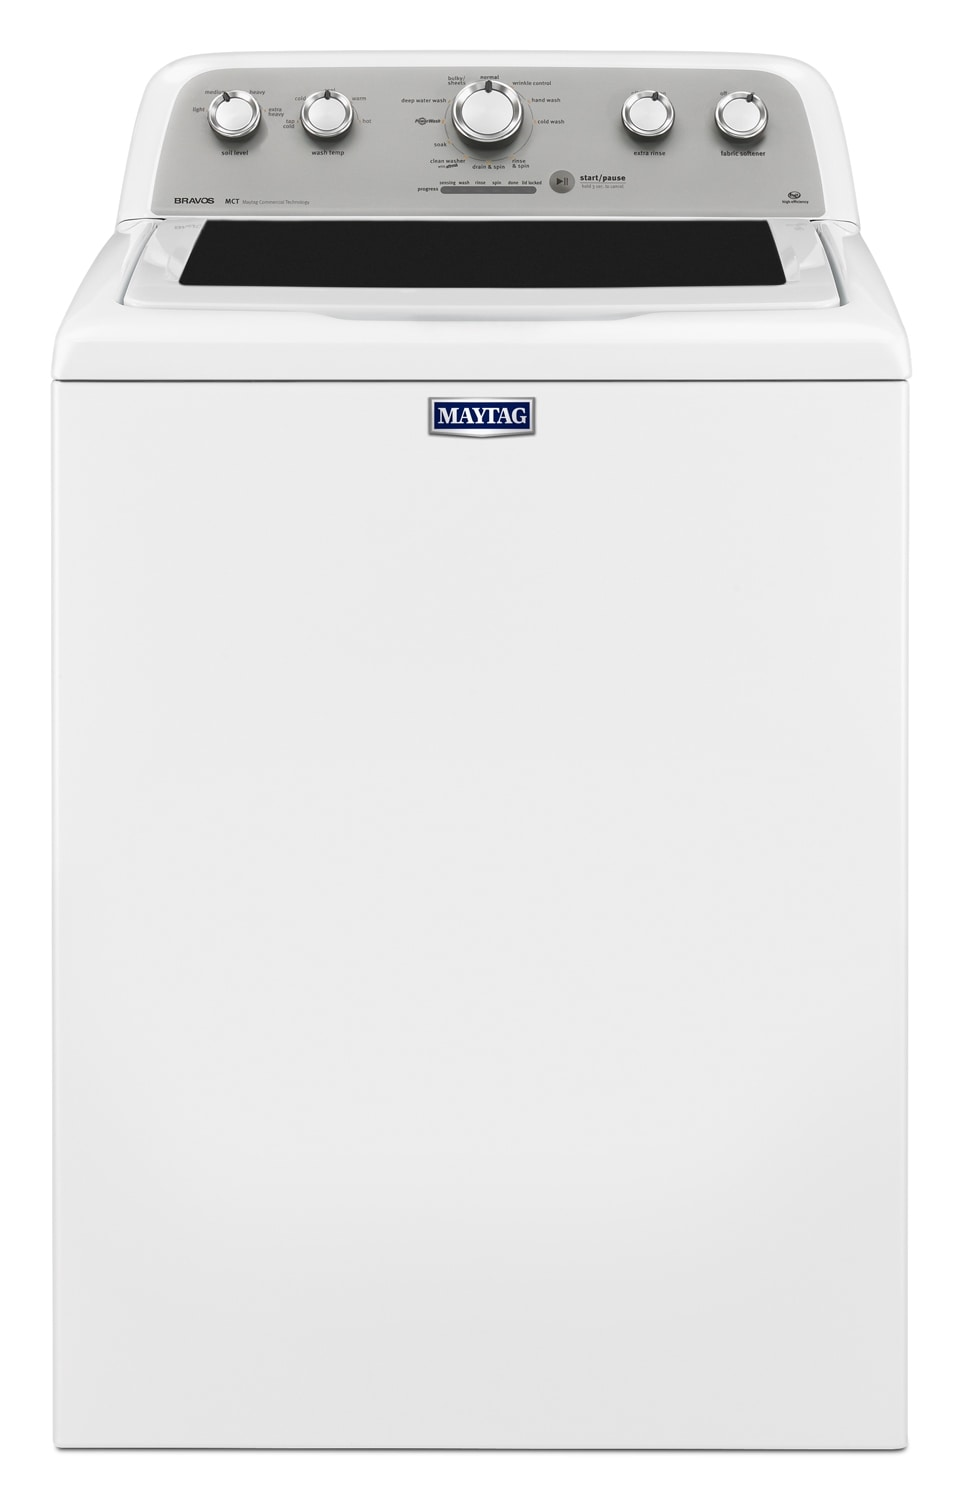 Maytag Bravos® 5.0 Cu. Ft. Top-Load Washer - White